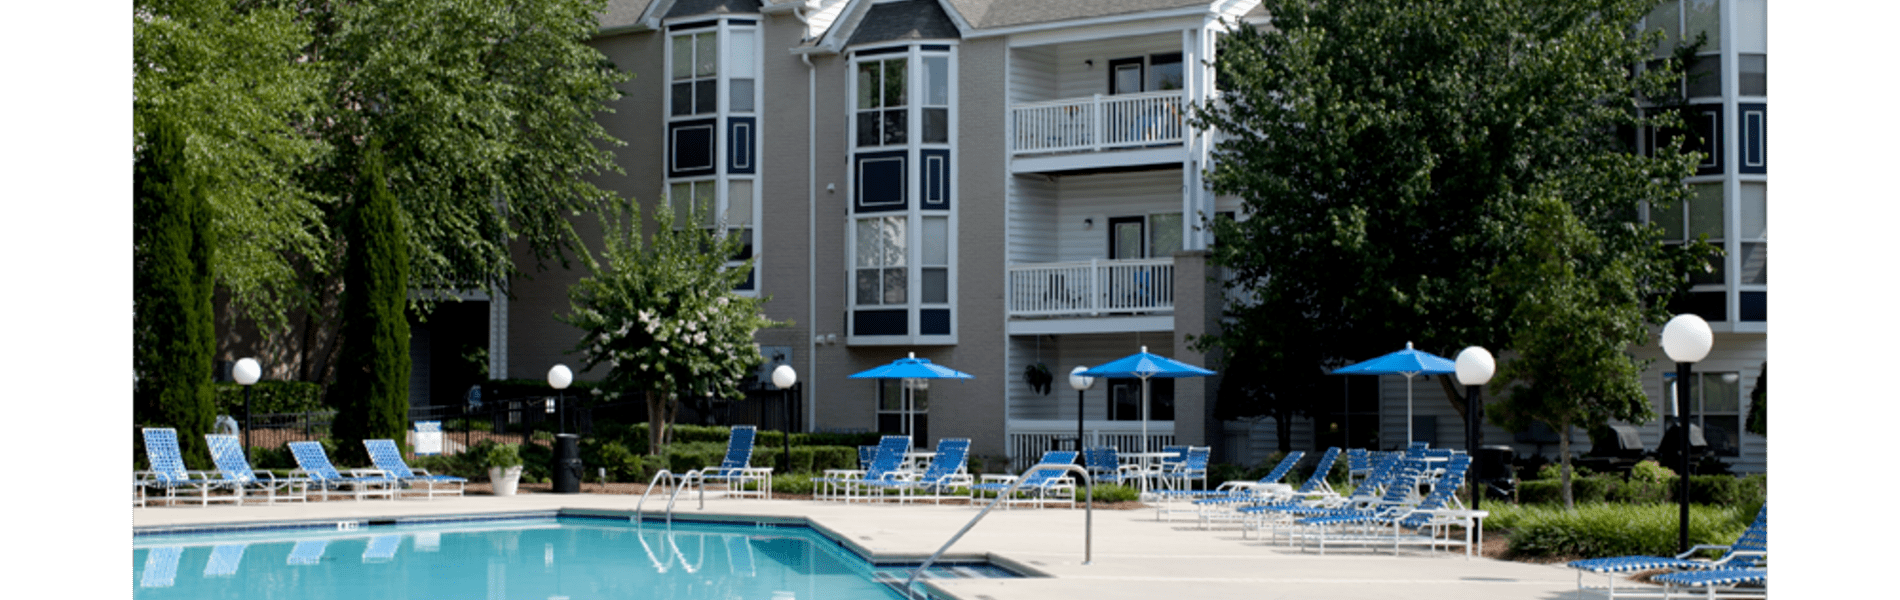 Whitehall Estates Apartments | Apartments in Charlotte NC